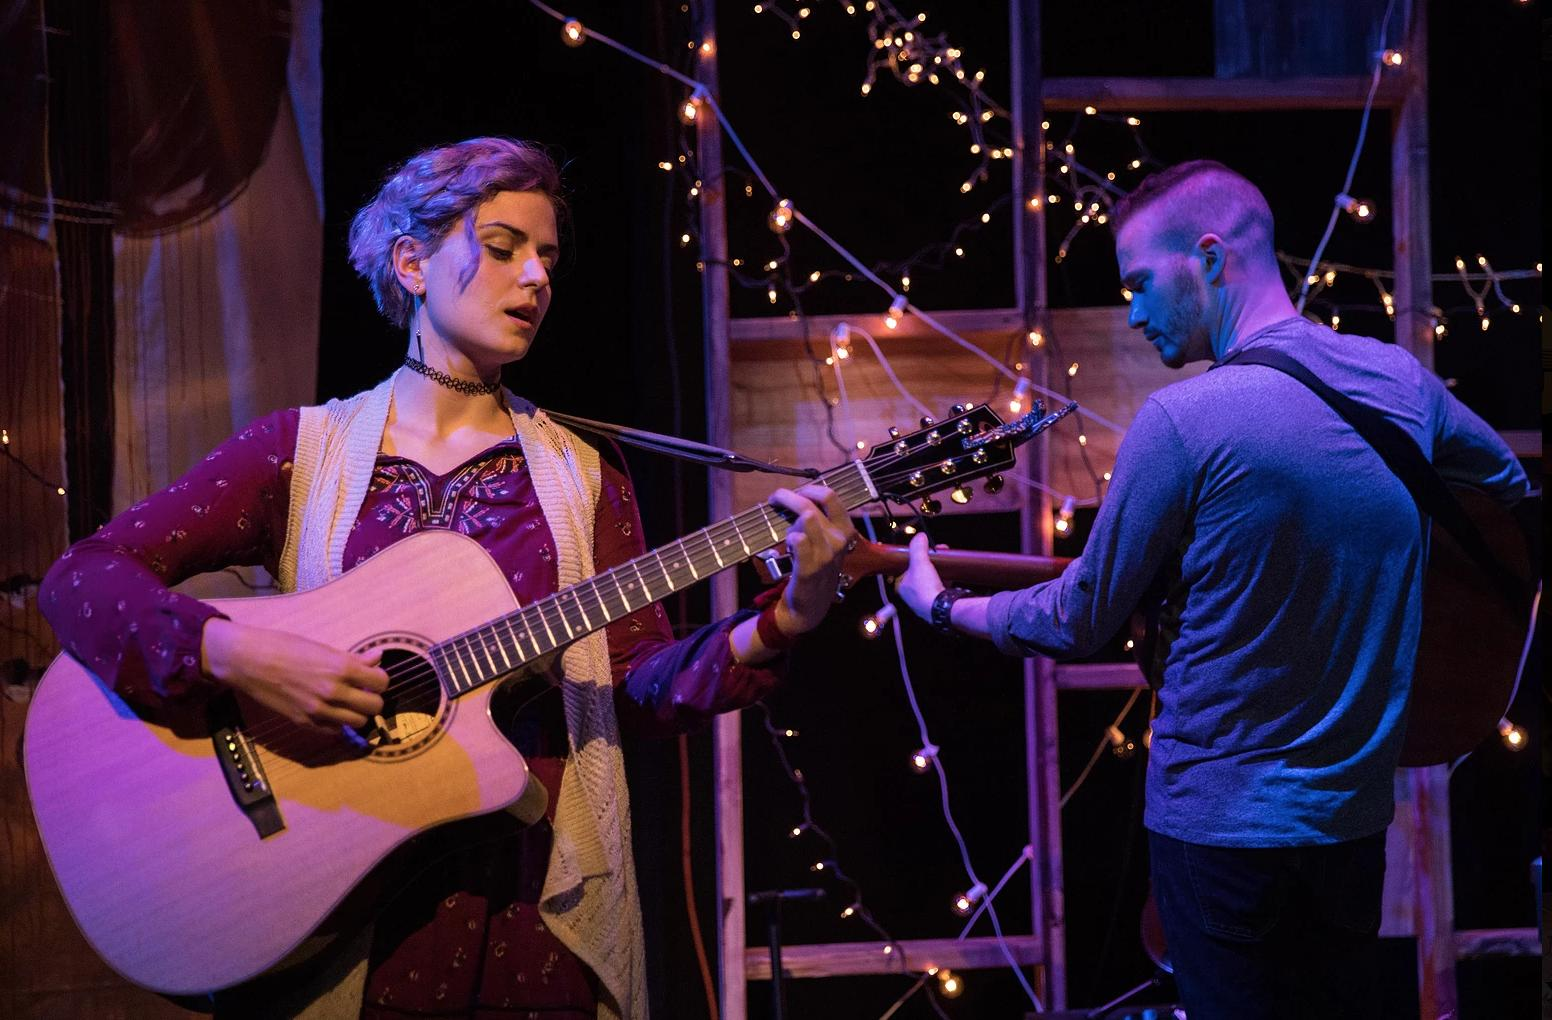 BWW Review: THE MAGI Brings Love and Lyrics to The Hub Theatre